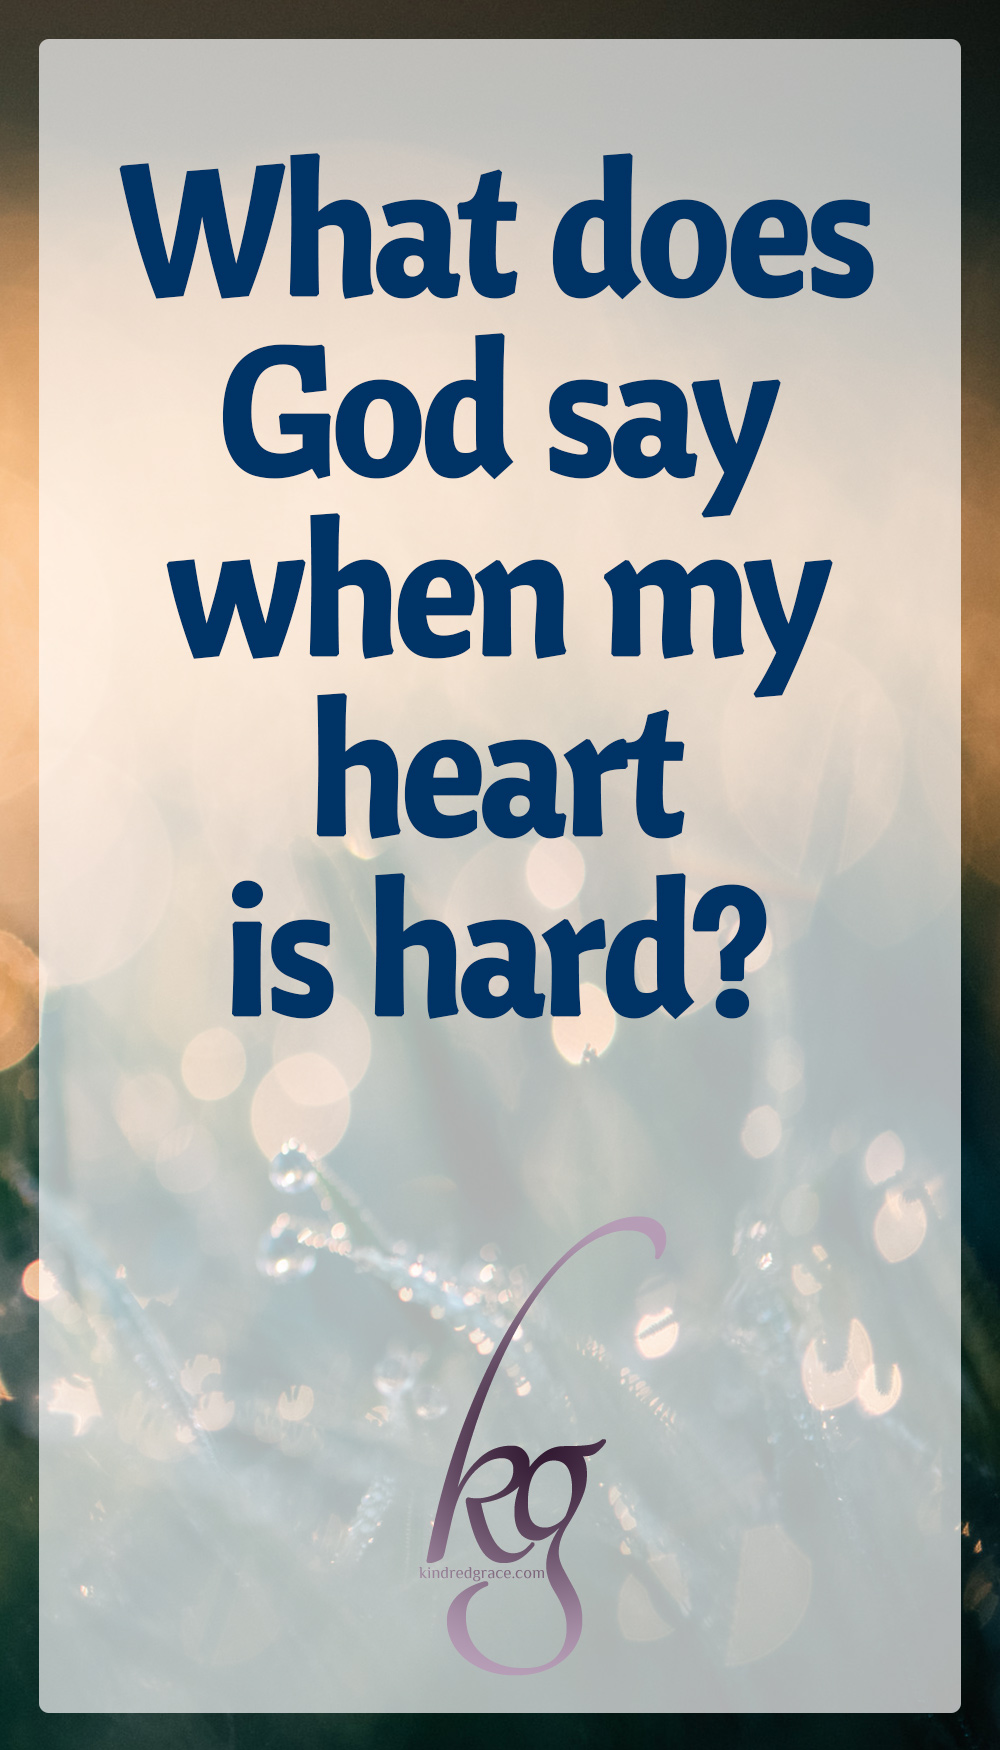 What does God say when my heart is hard? via @KindredGrace